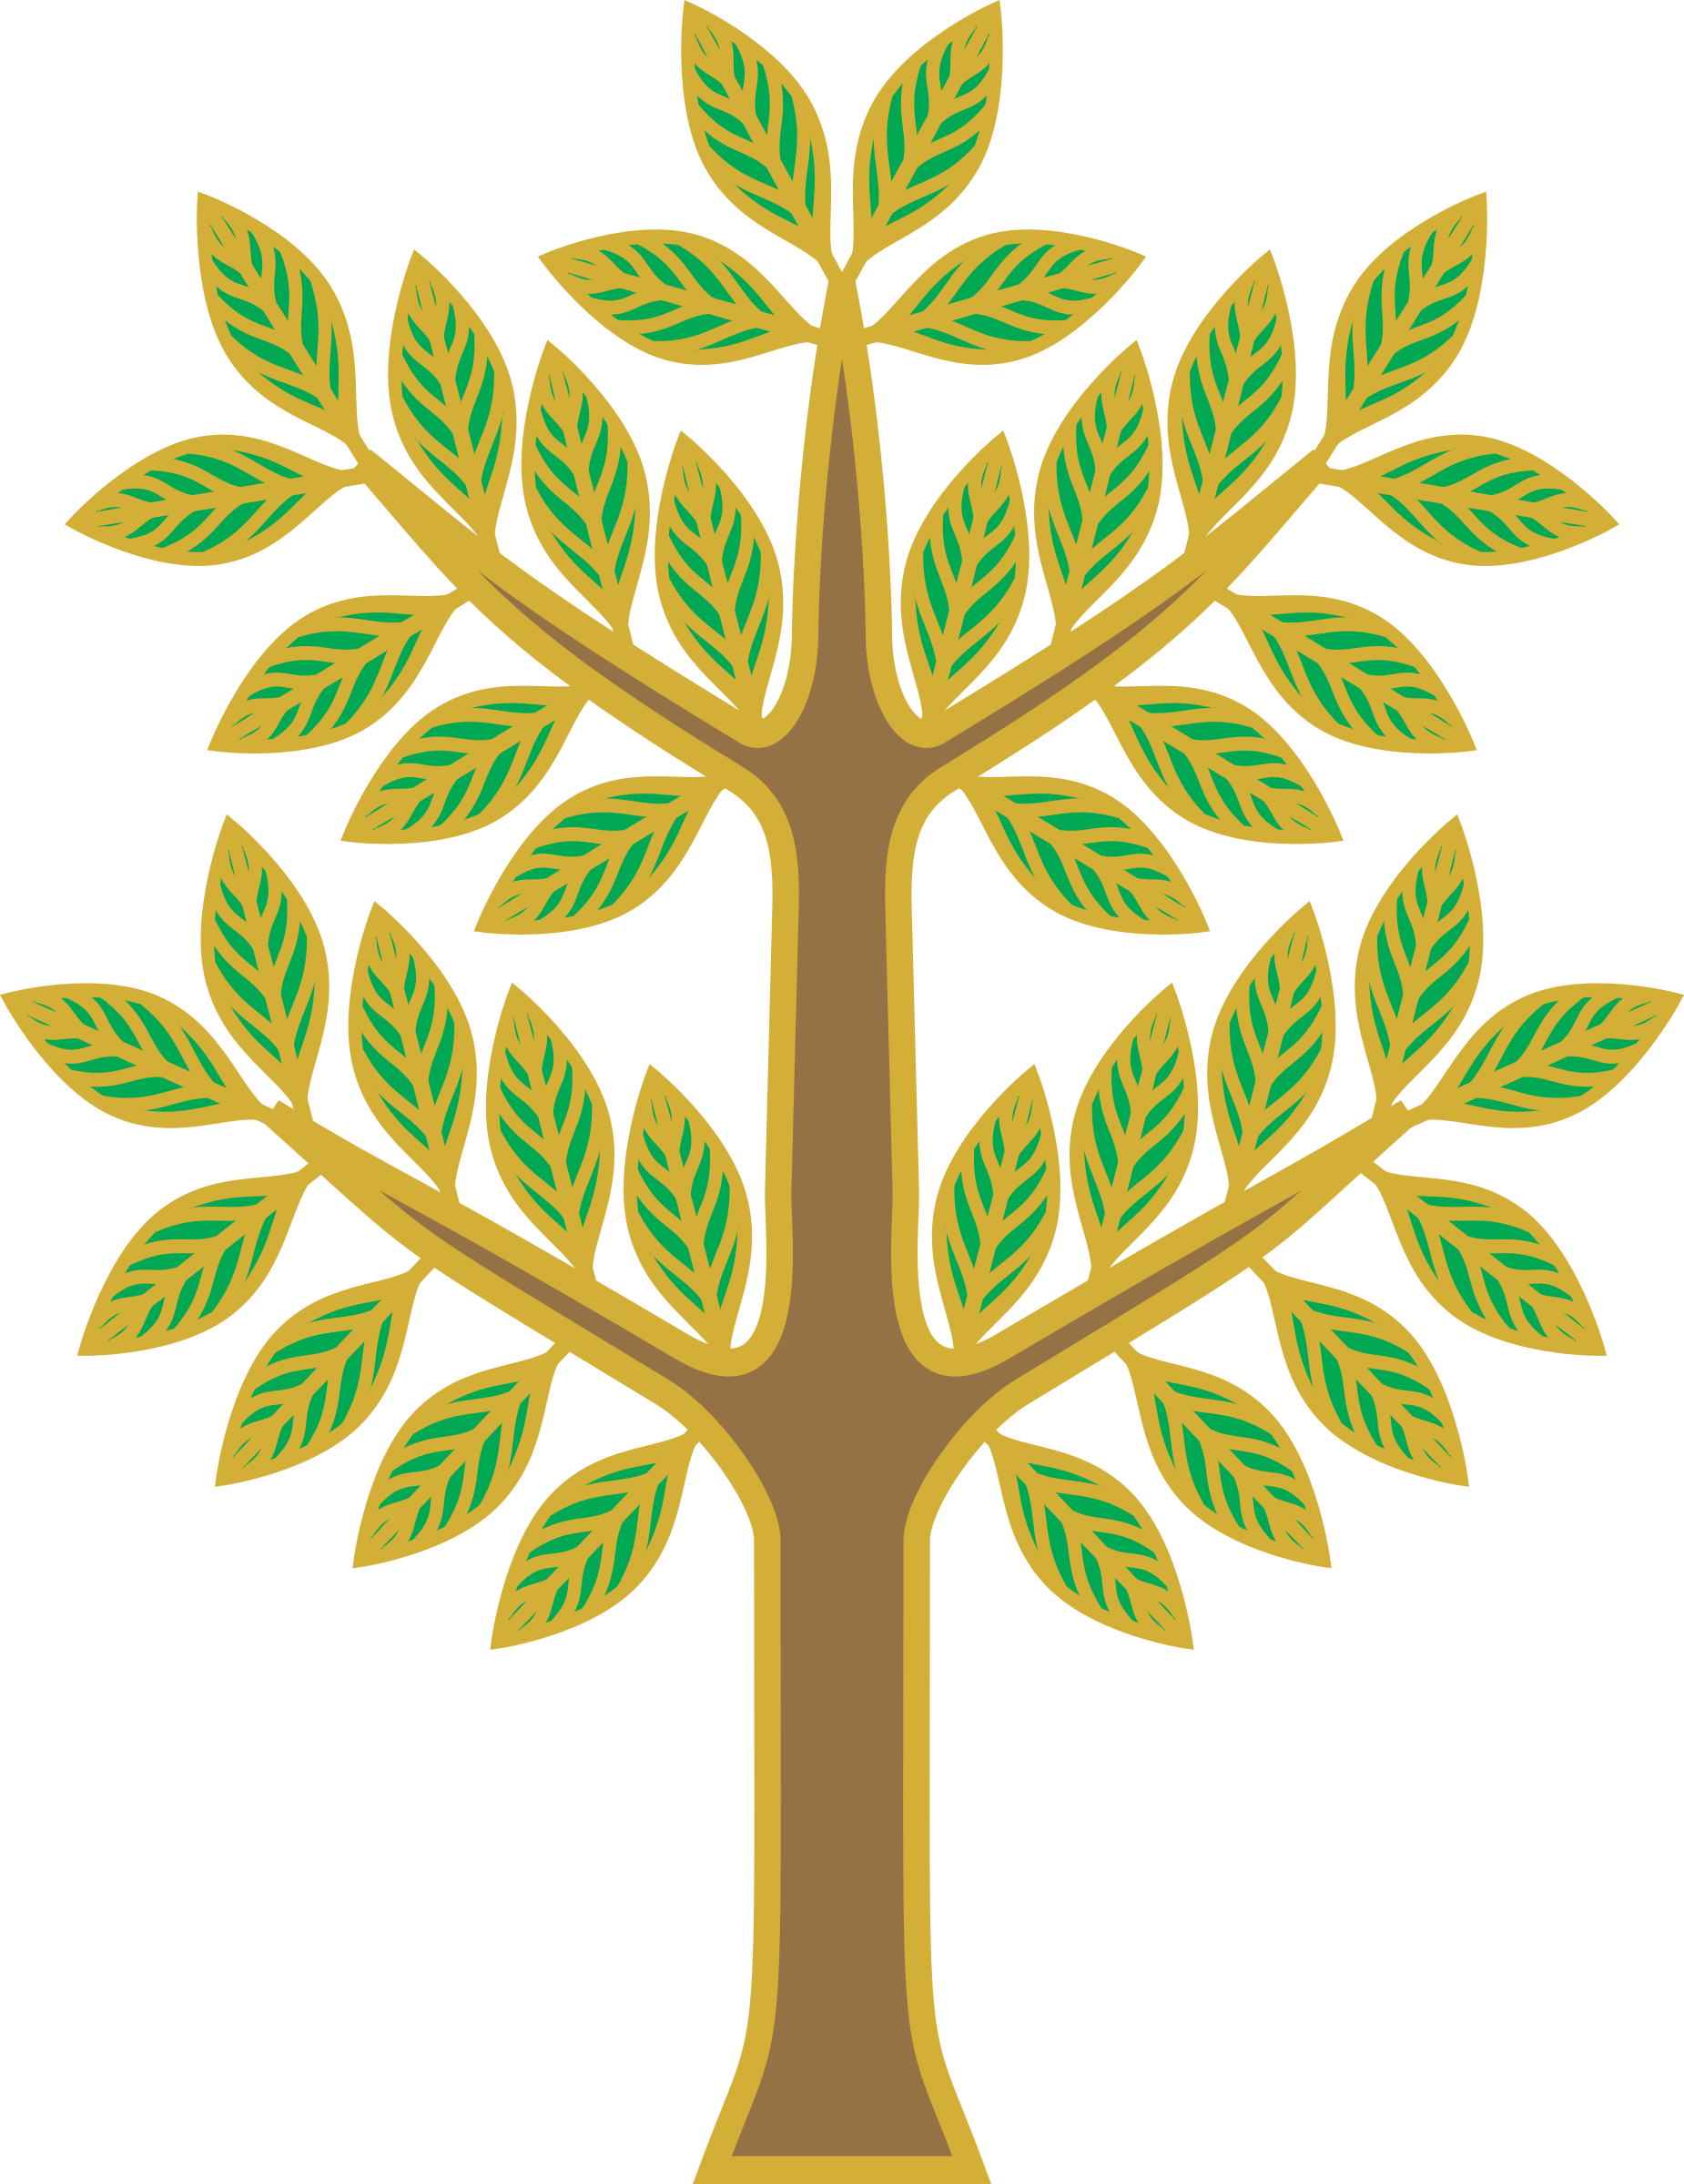 Stylised tree by Firkin